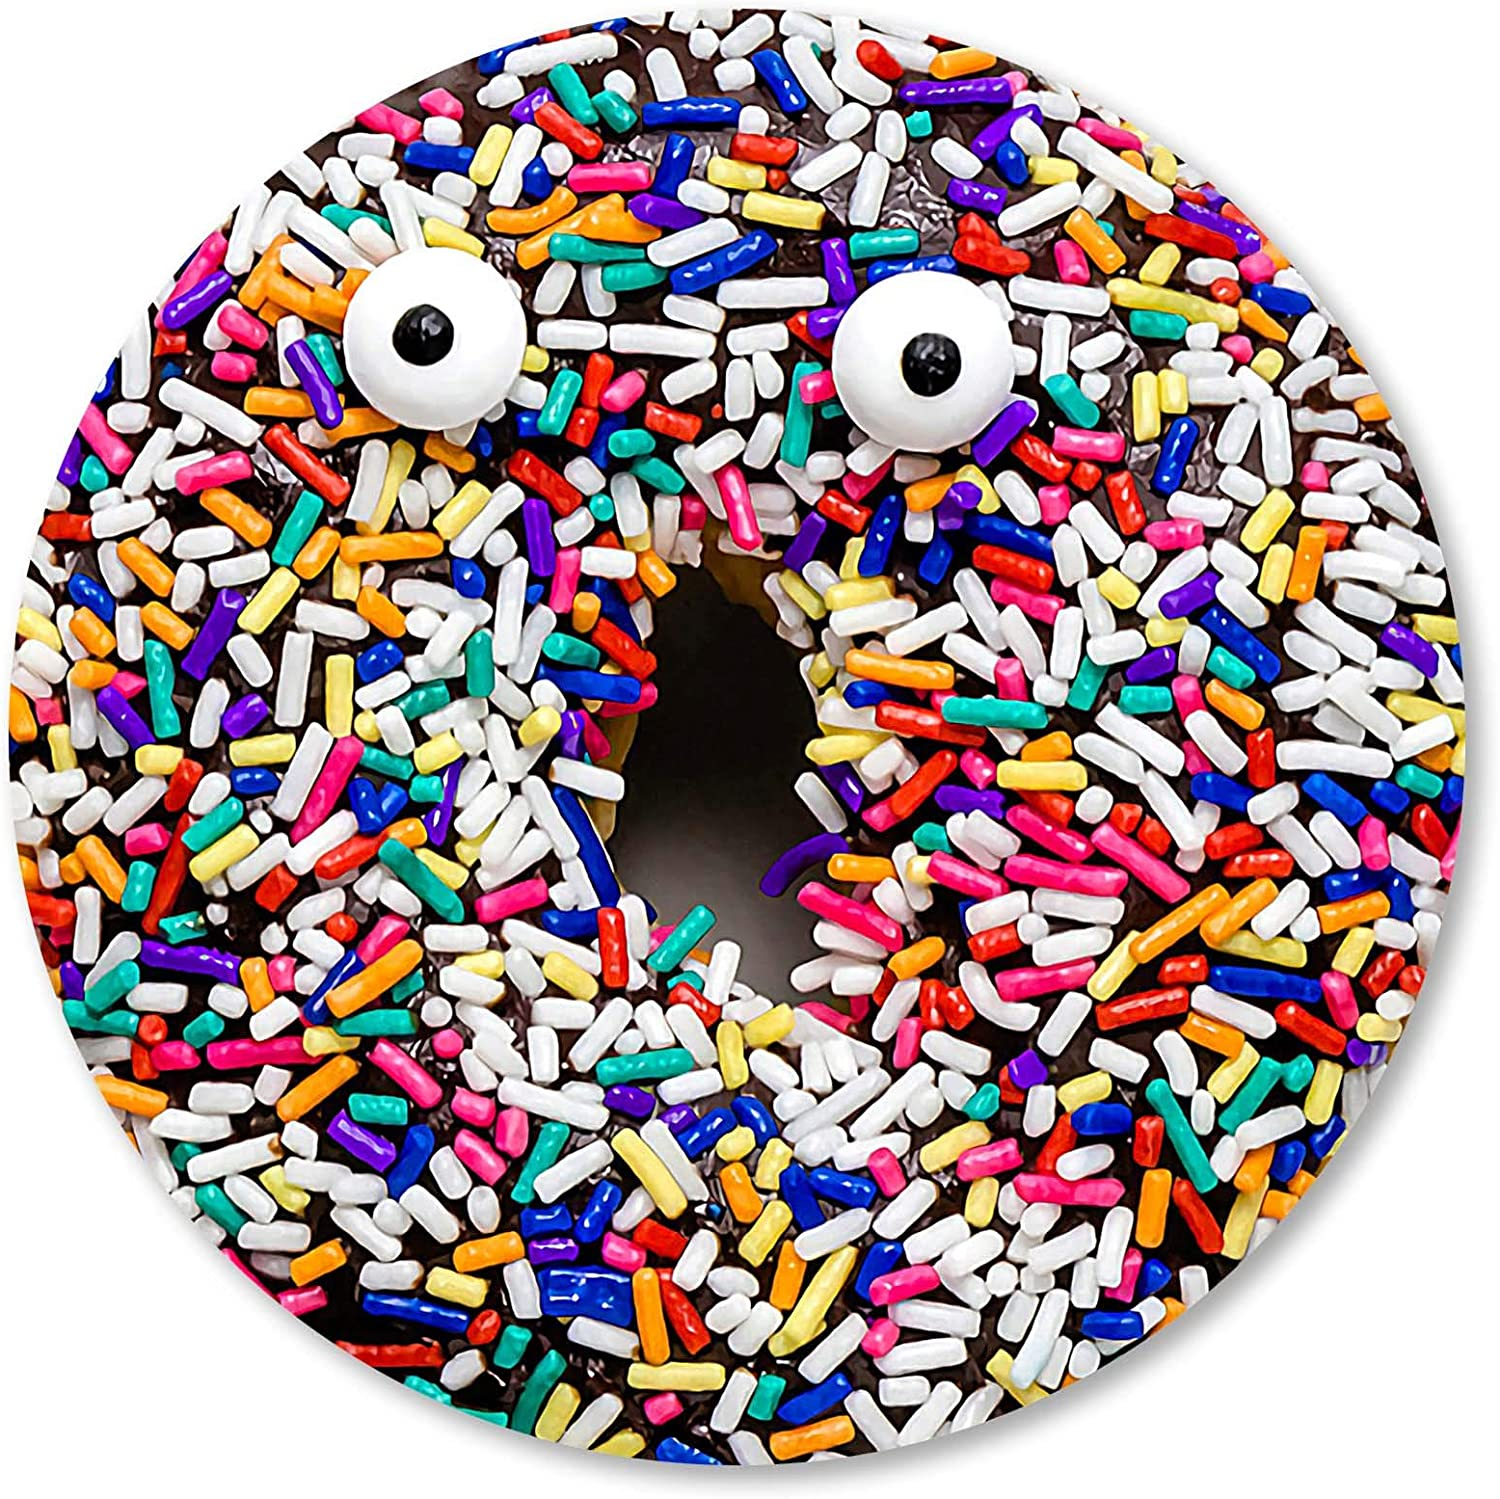 IMAYONDIA Round Mouse Pad Donut with Colorful Sprinkles,Funny Chocolate Doughnut Mouse Pads for Kids,Realistic Food Design Circular Mousepad for Laptop Computers